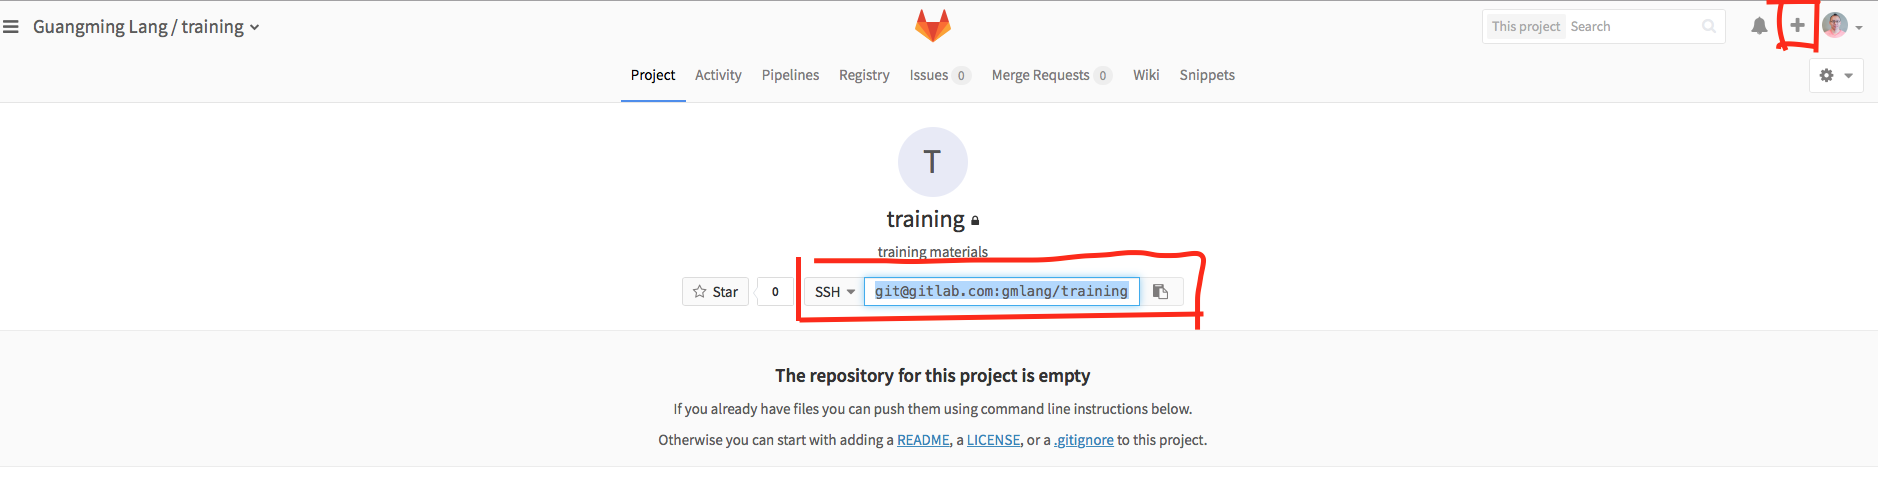 On Git, Github and Gitlab – Become Great at R